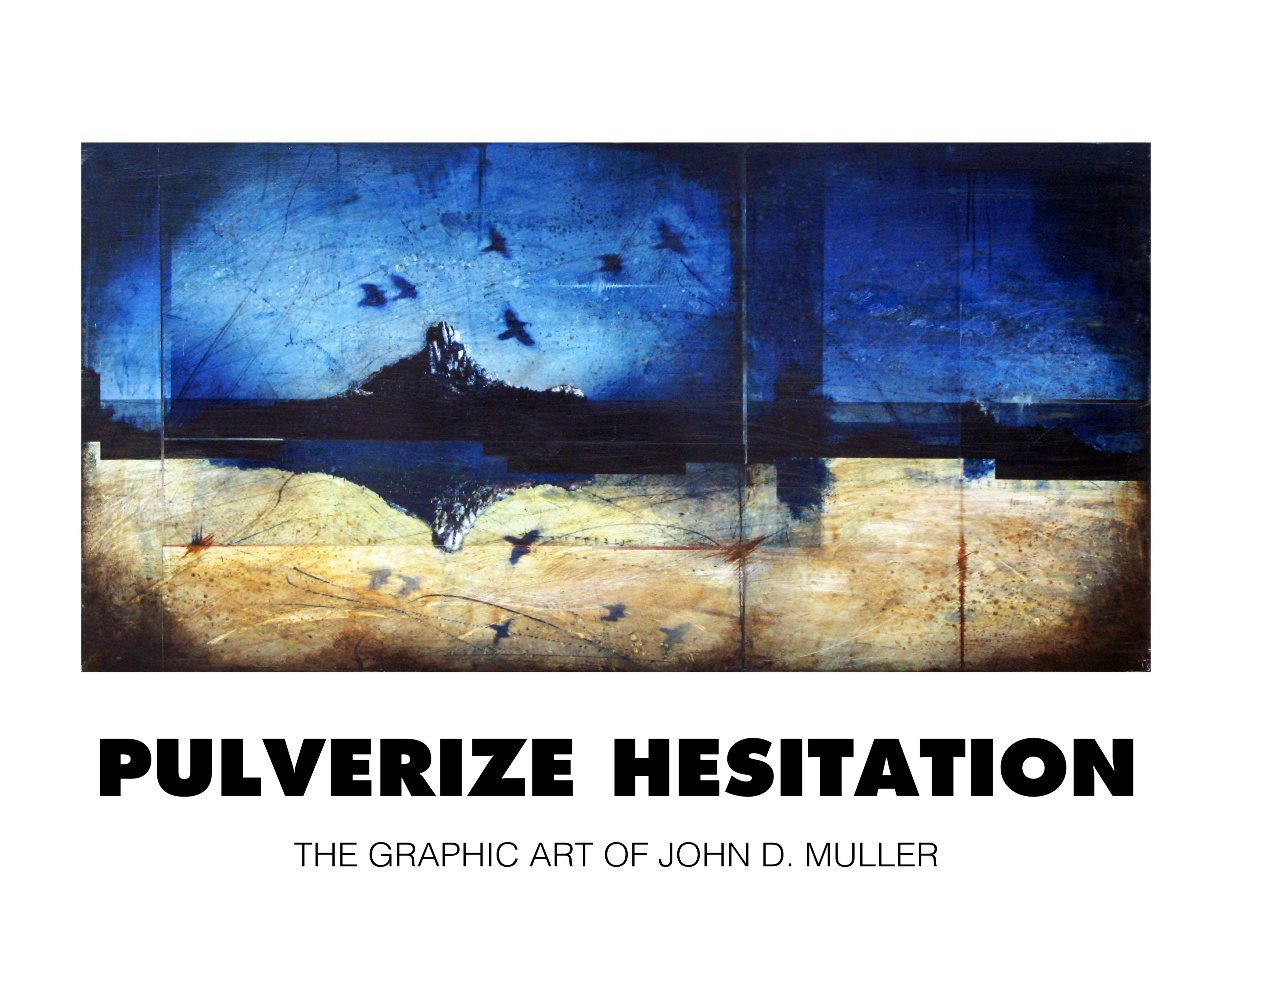 PULVERIZE HESITATION: The Graphic Art of John D. Muller